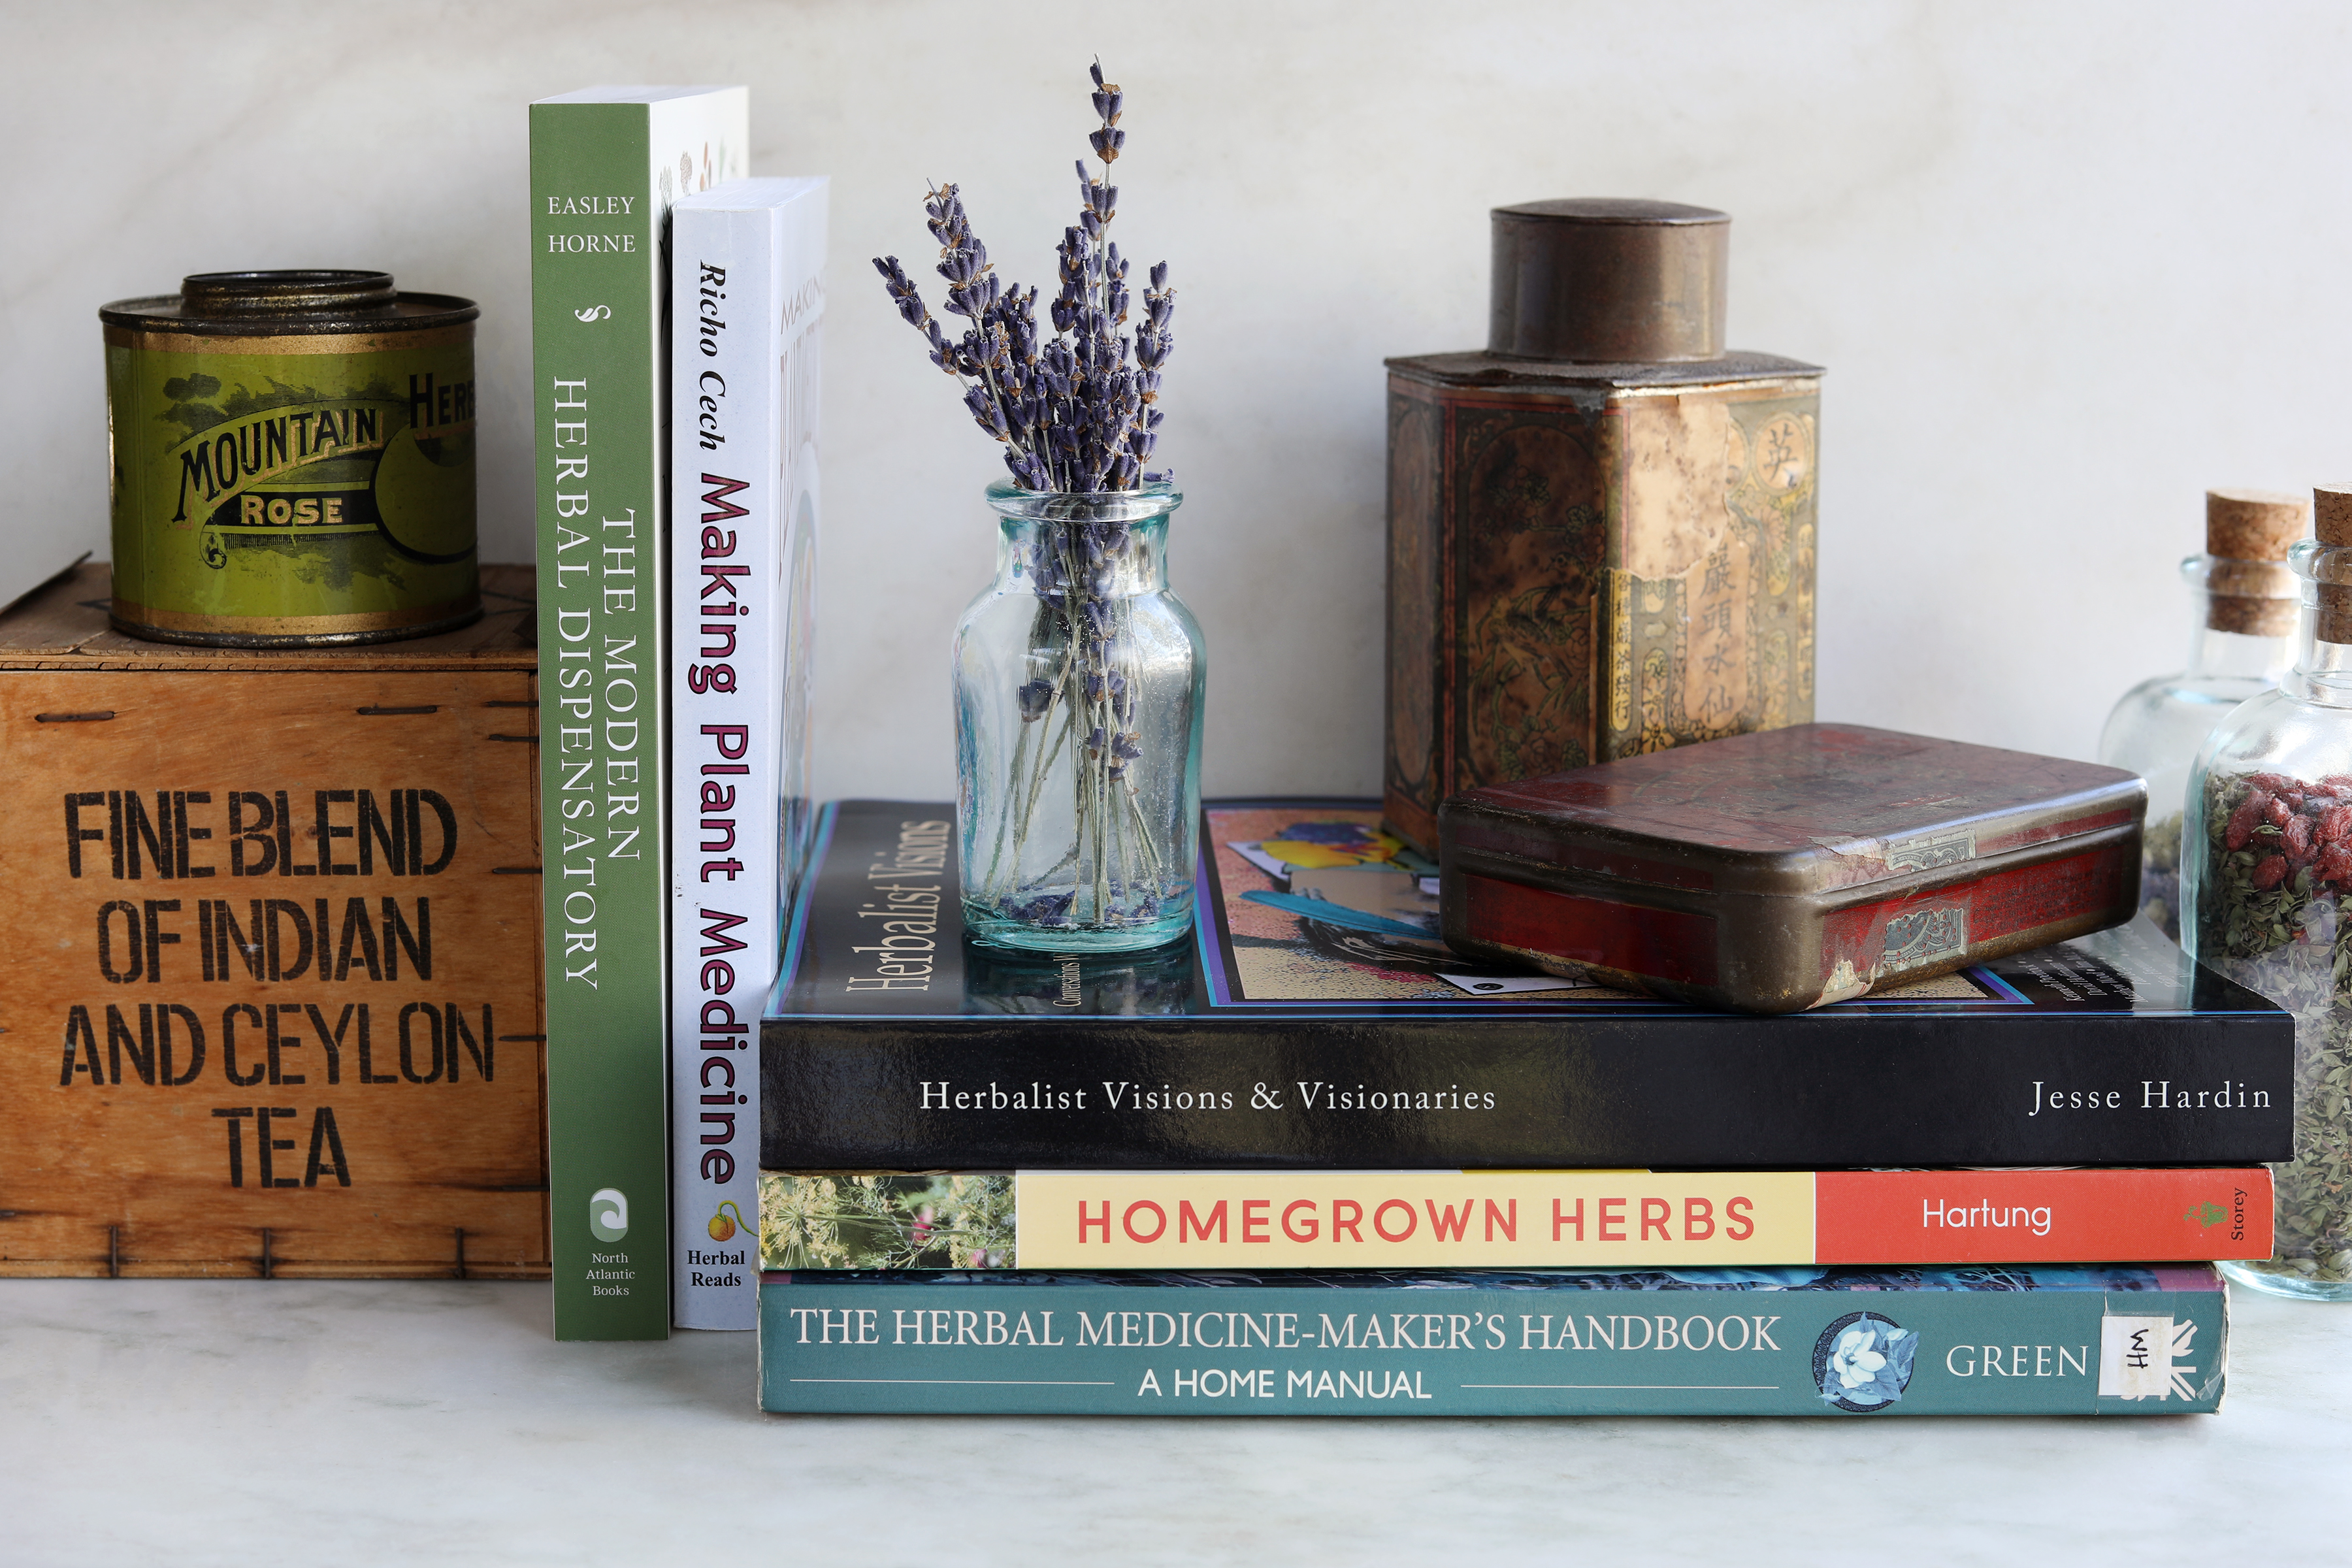 Stacks of herbal books with vintage props and fresh sprigs of lavender flowers